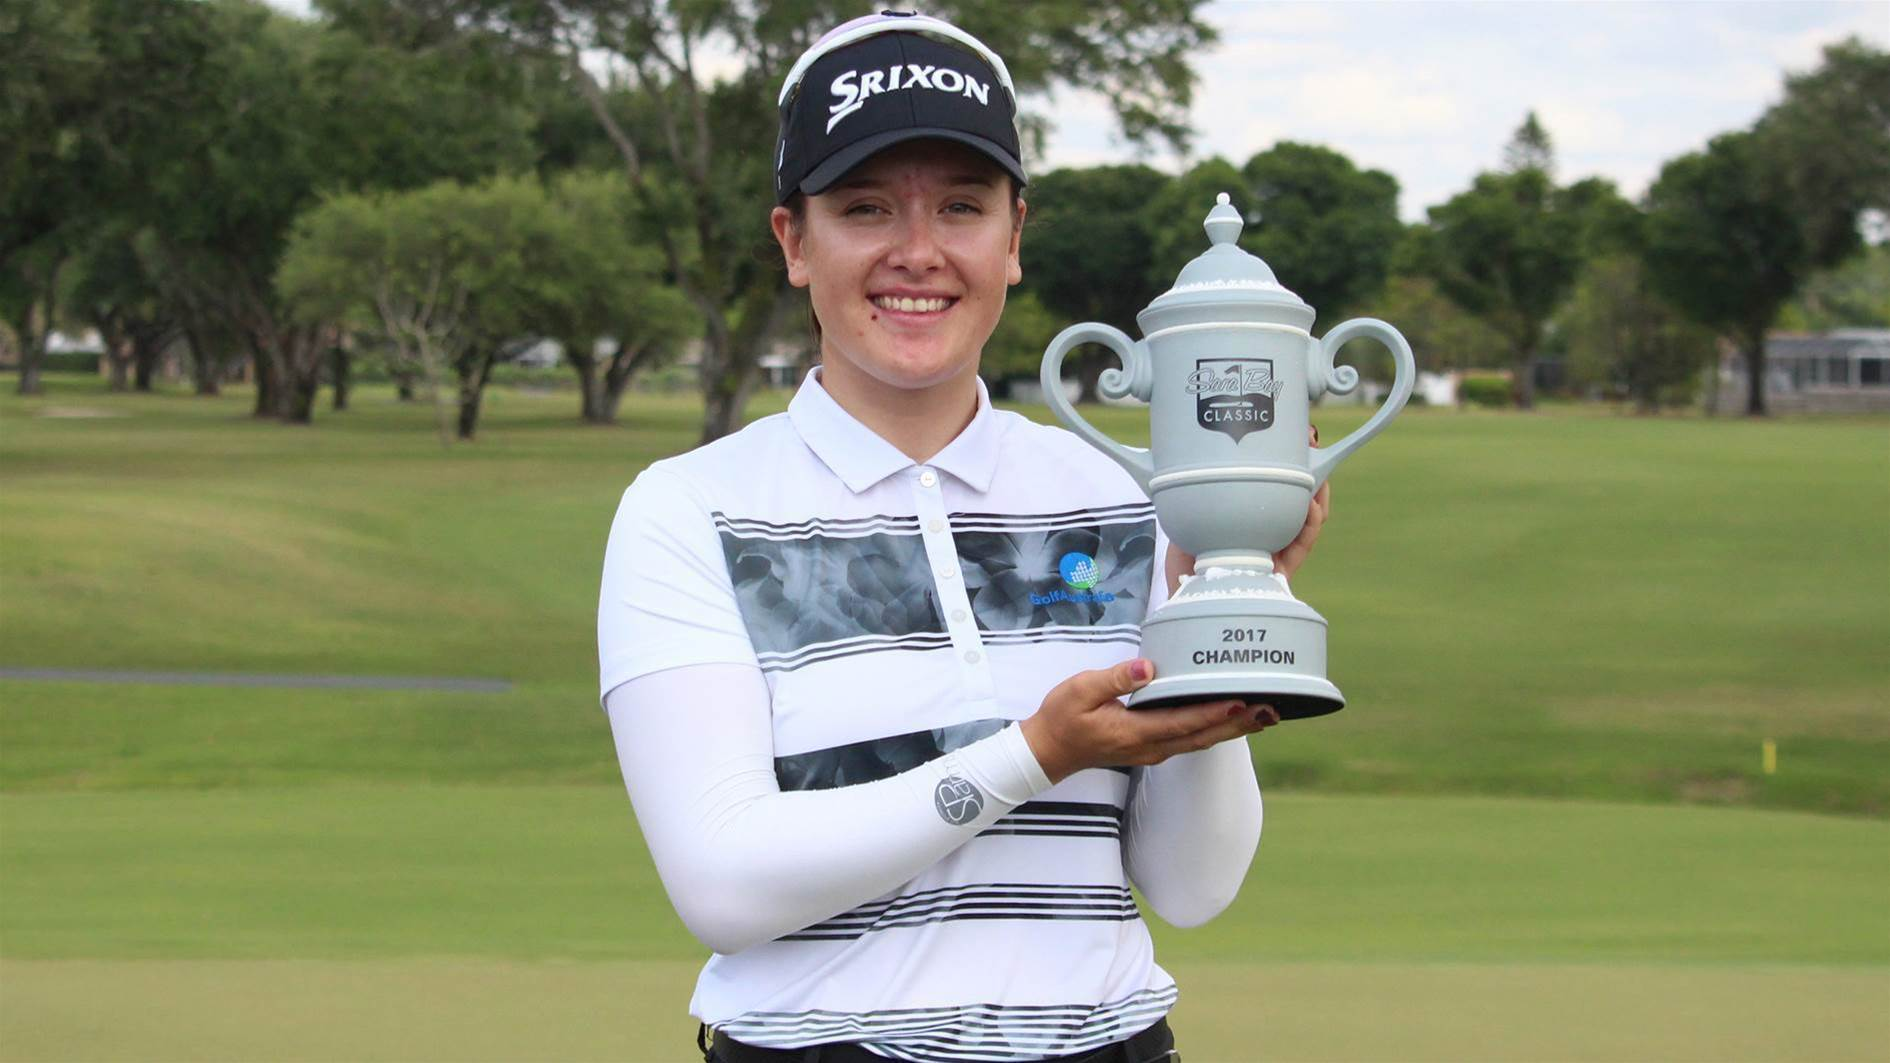 Green grabs first pro victory